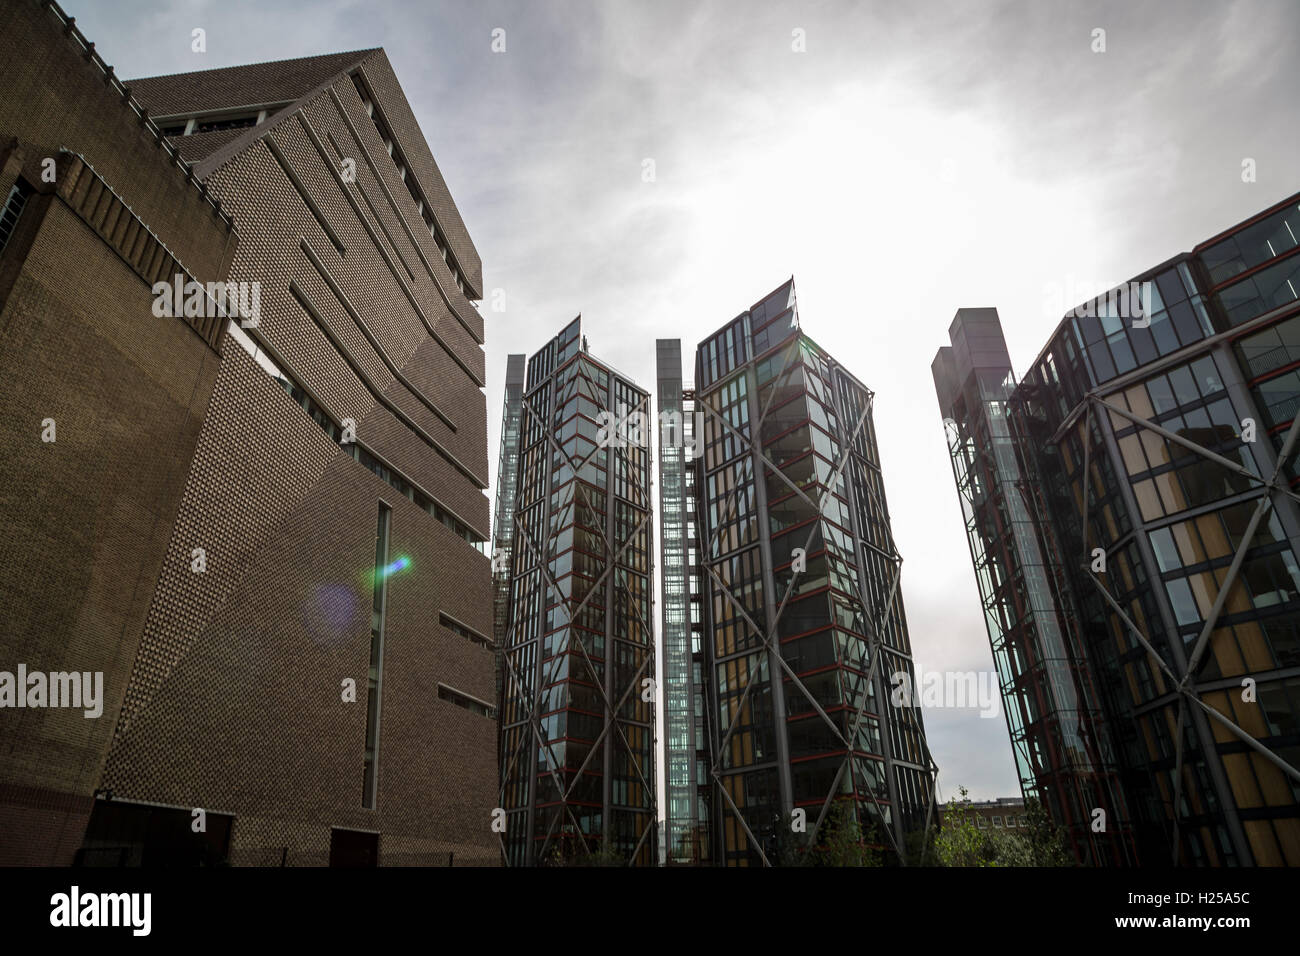 Tate Modern new Switch House building (left) with Neo Bankside luxury high-rise apartments (right) in London, UK. - Stock Image